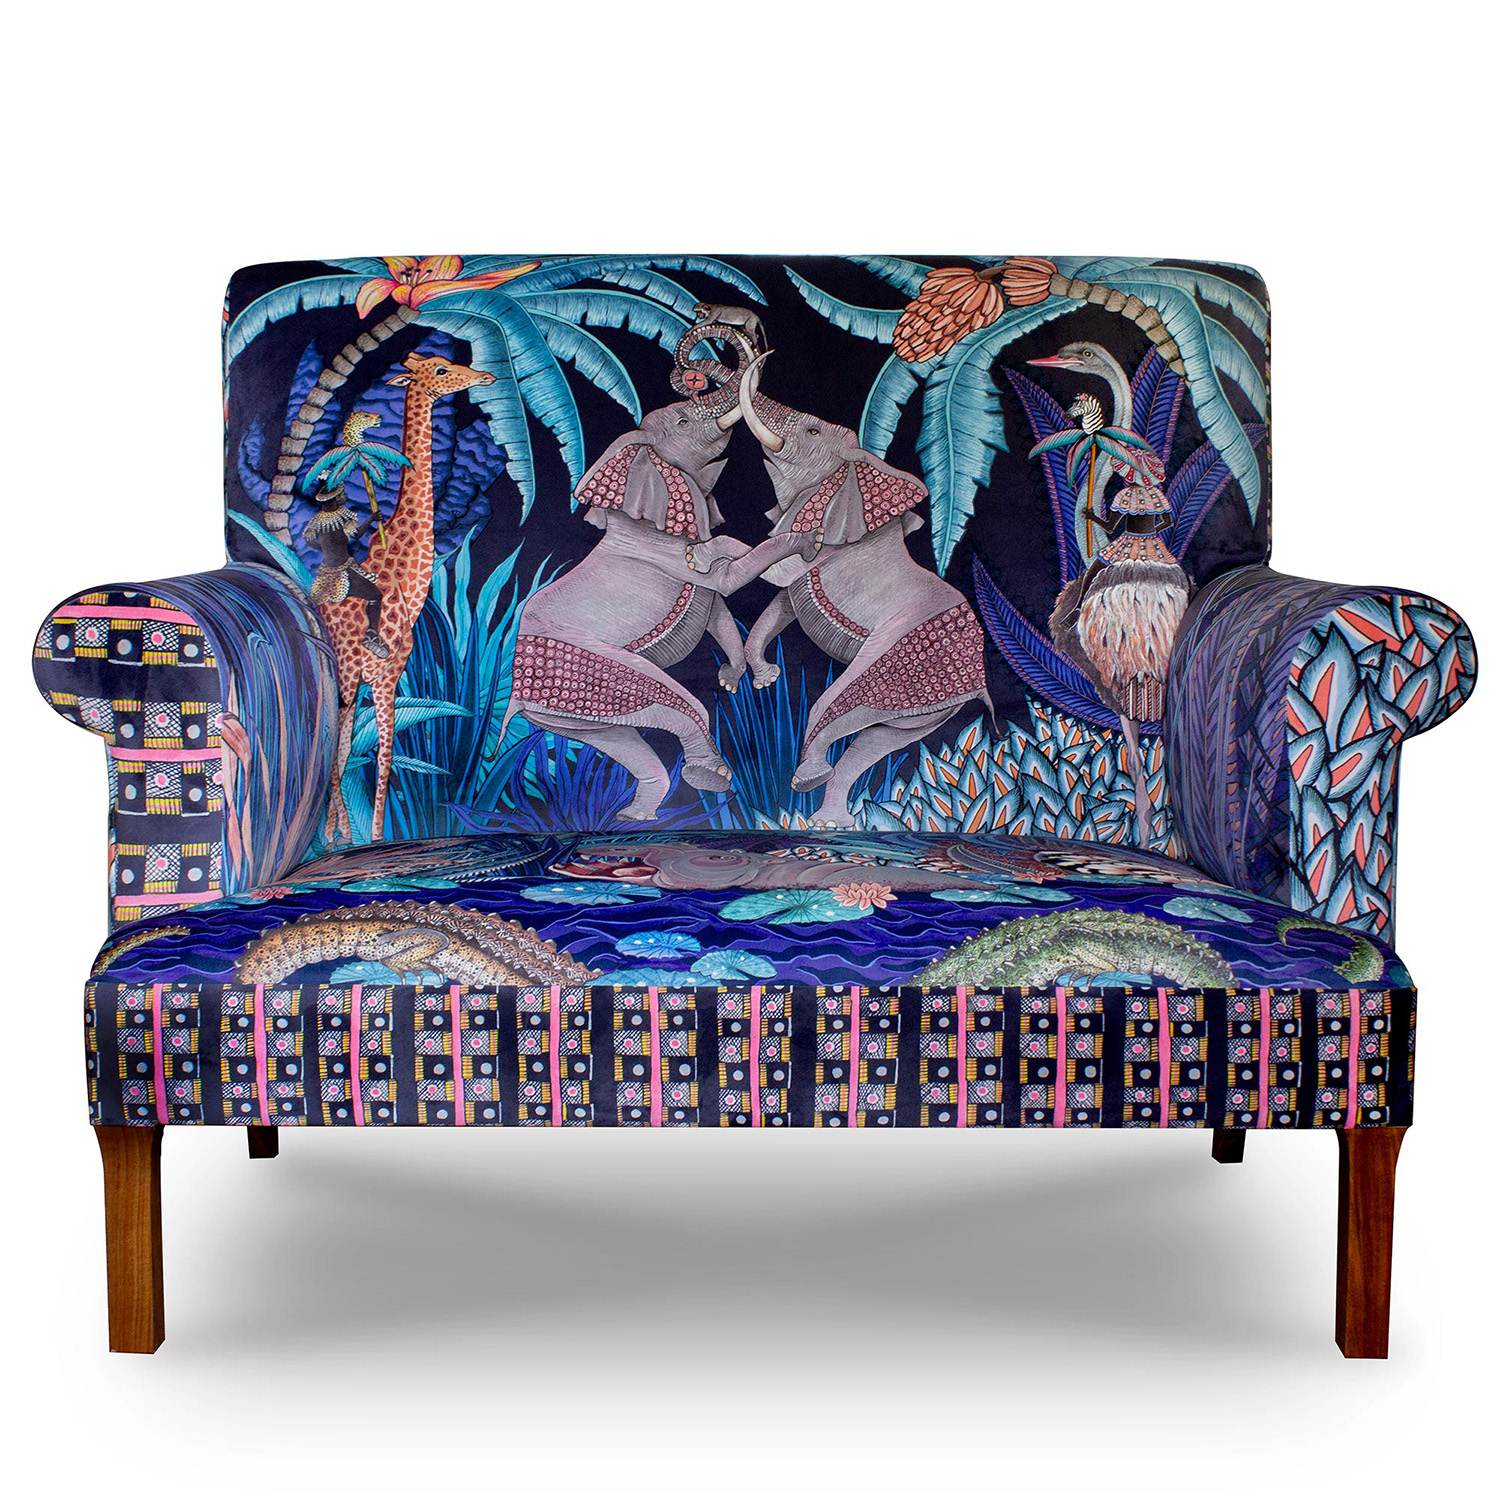 Sabie Limited Edition Sofa - Tanzanite